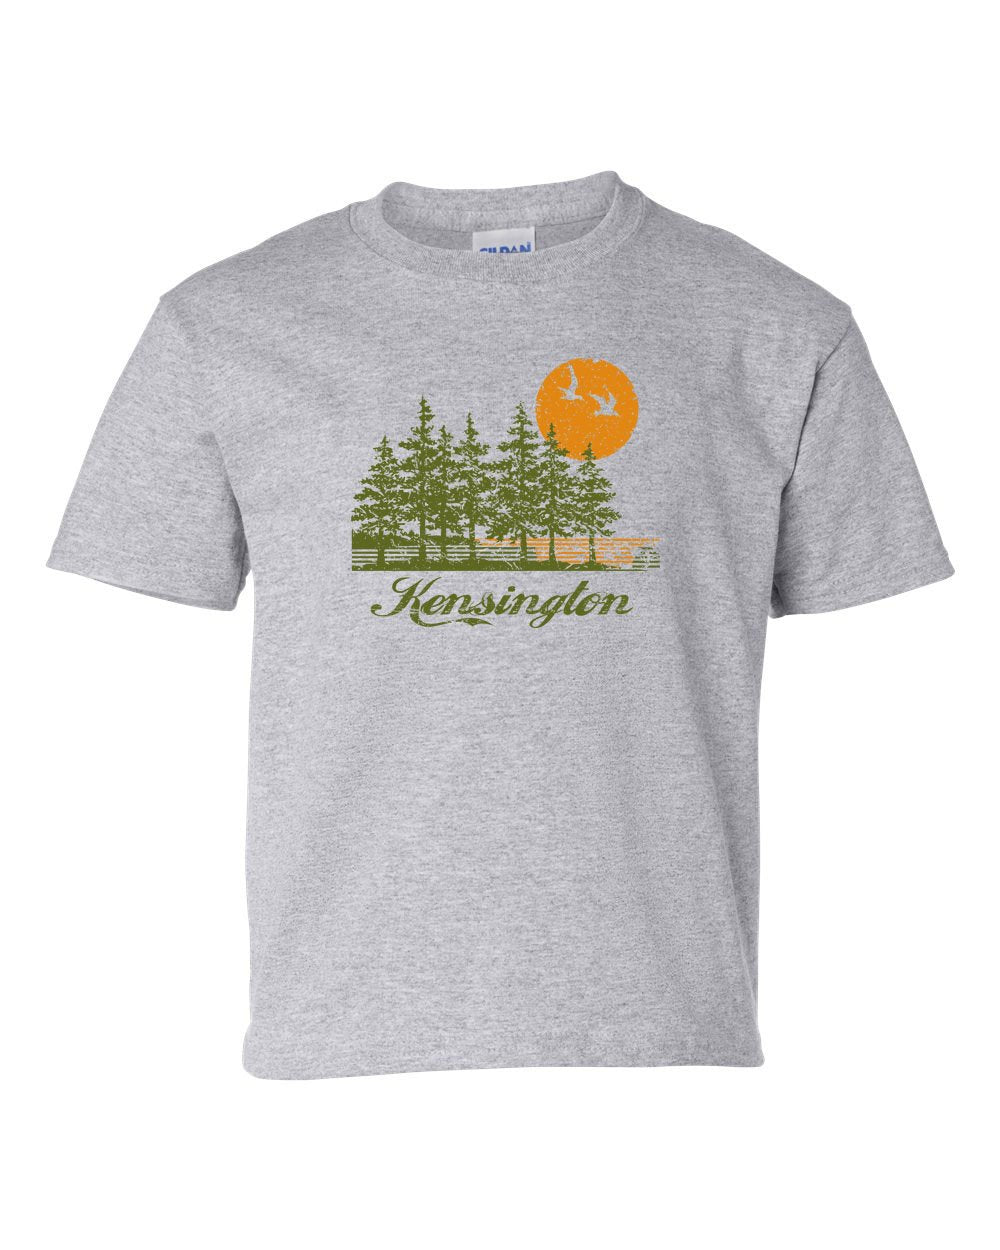 Kensington KIDS T-Shirt